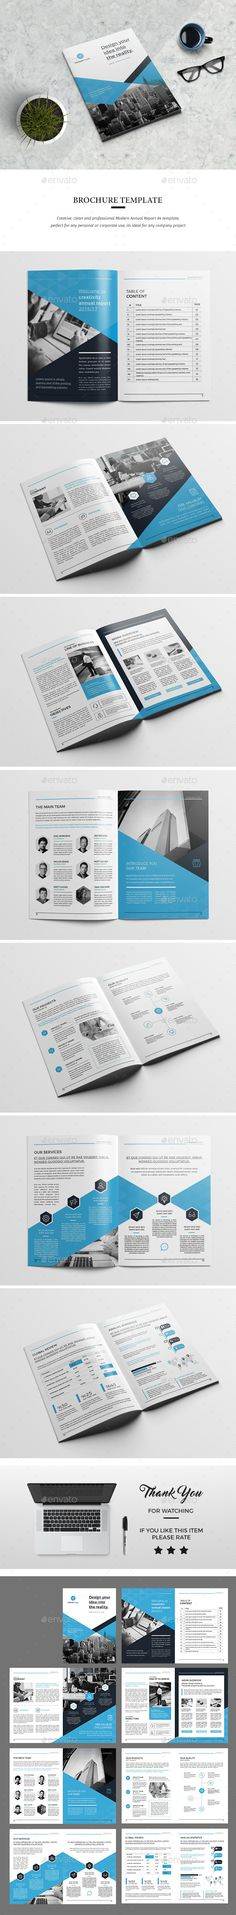 #Brochure 01 - #Corporate Brochures Download here: https://graphicriver.net/item/brochure-01/19226555?ref=alena994